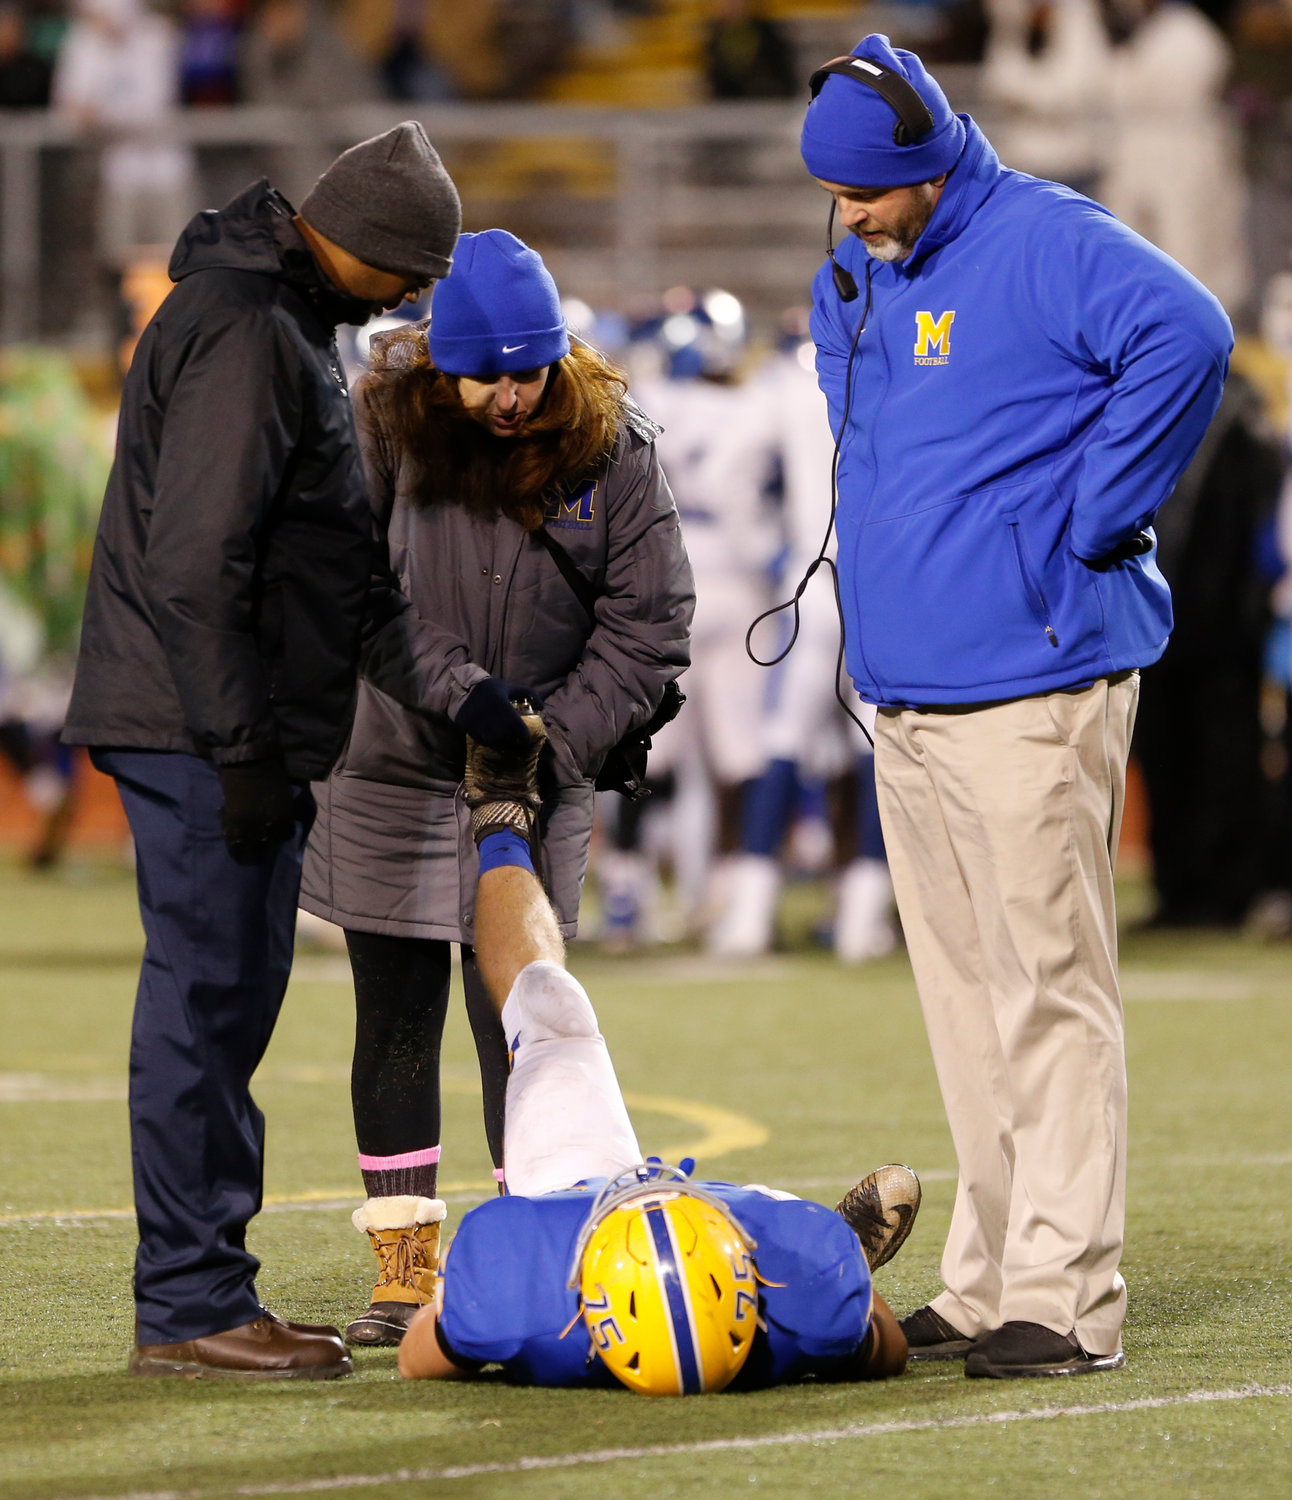 Head coach Brett Myers watches trainers work on Morgan Billman during Middletown's 21-14 win over Conwell-Egan at Milton Hershey High School in the PIAA 3A state quarterfinals Nov. 23.